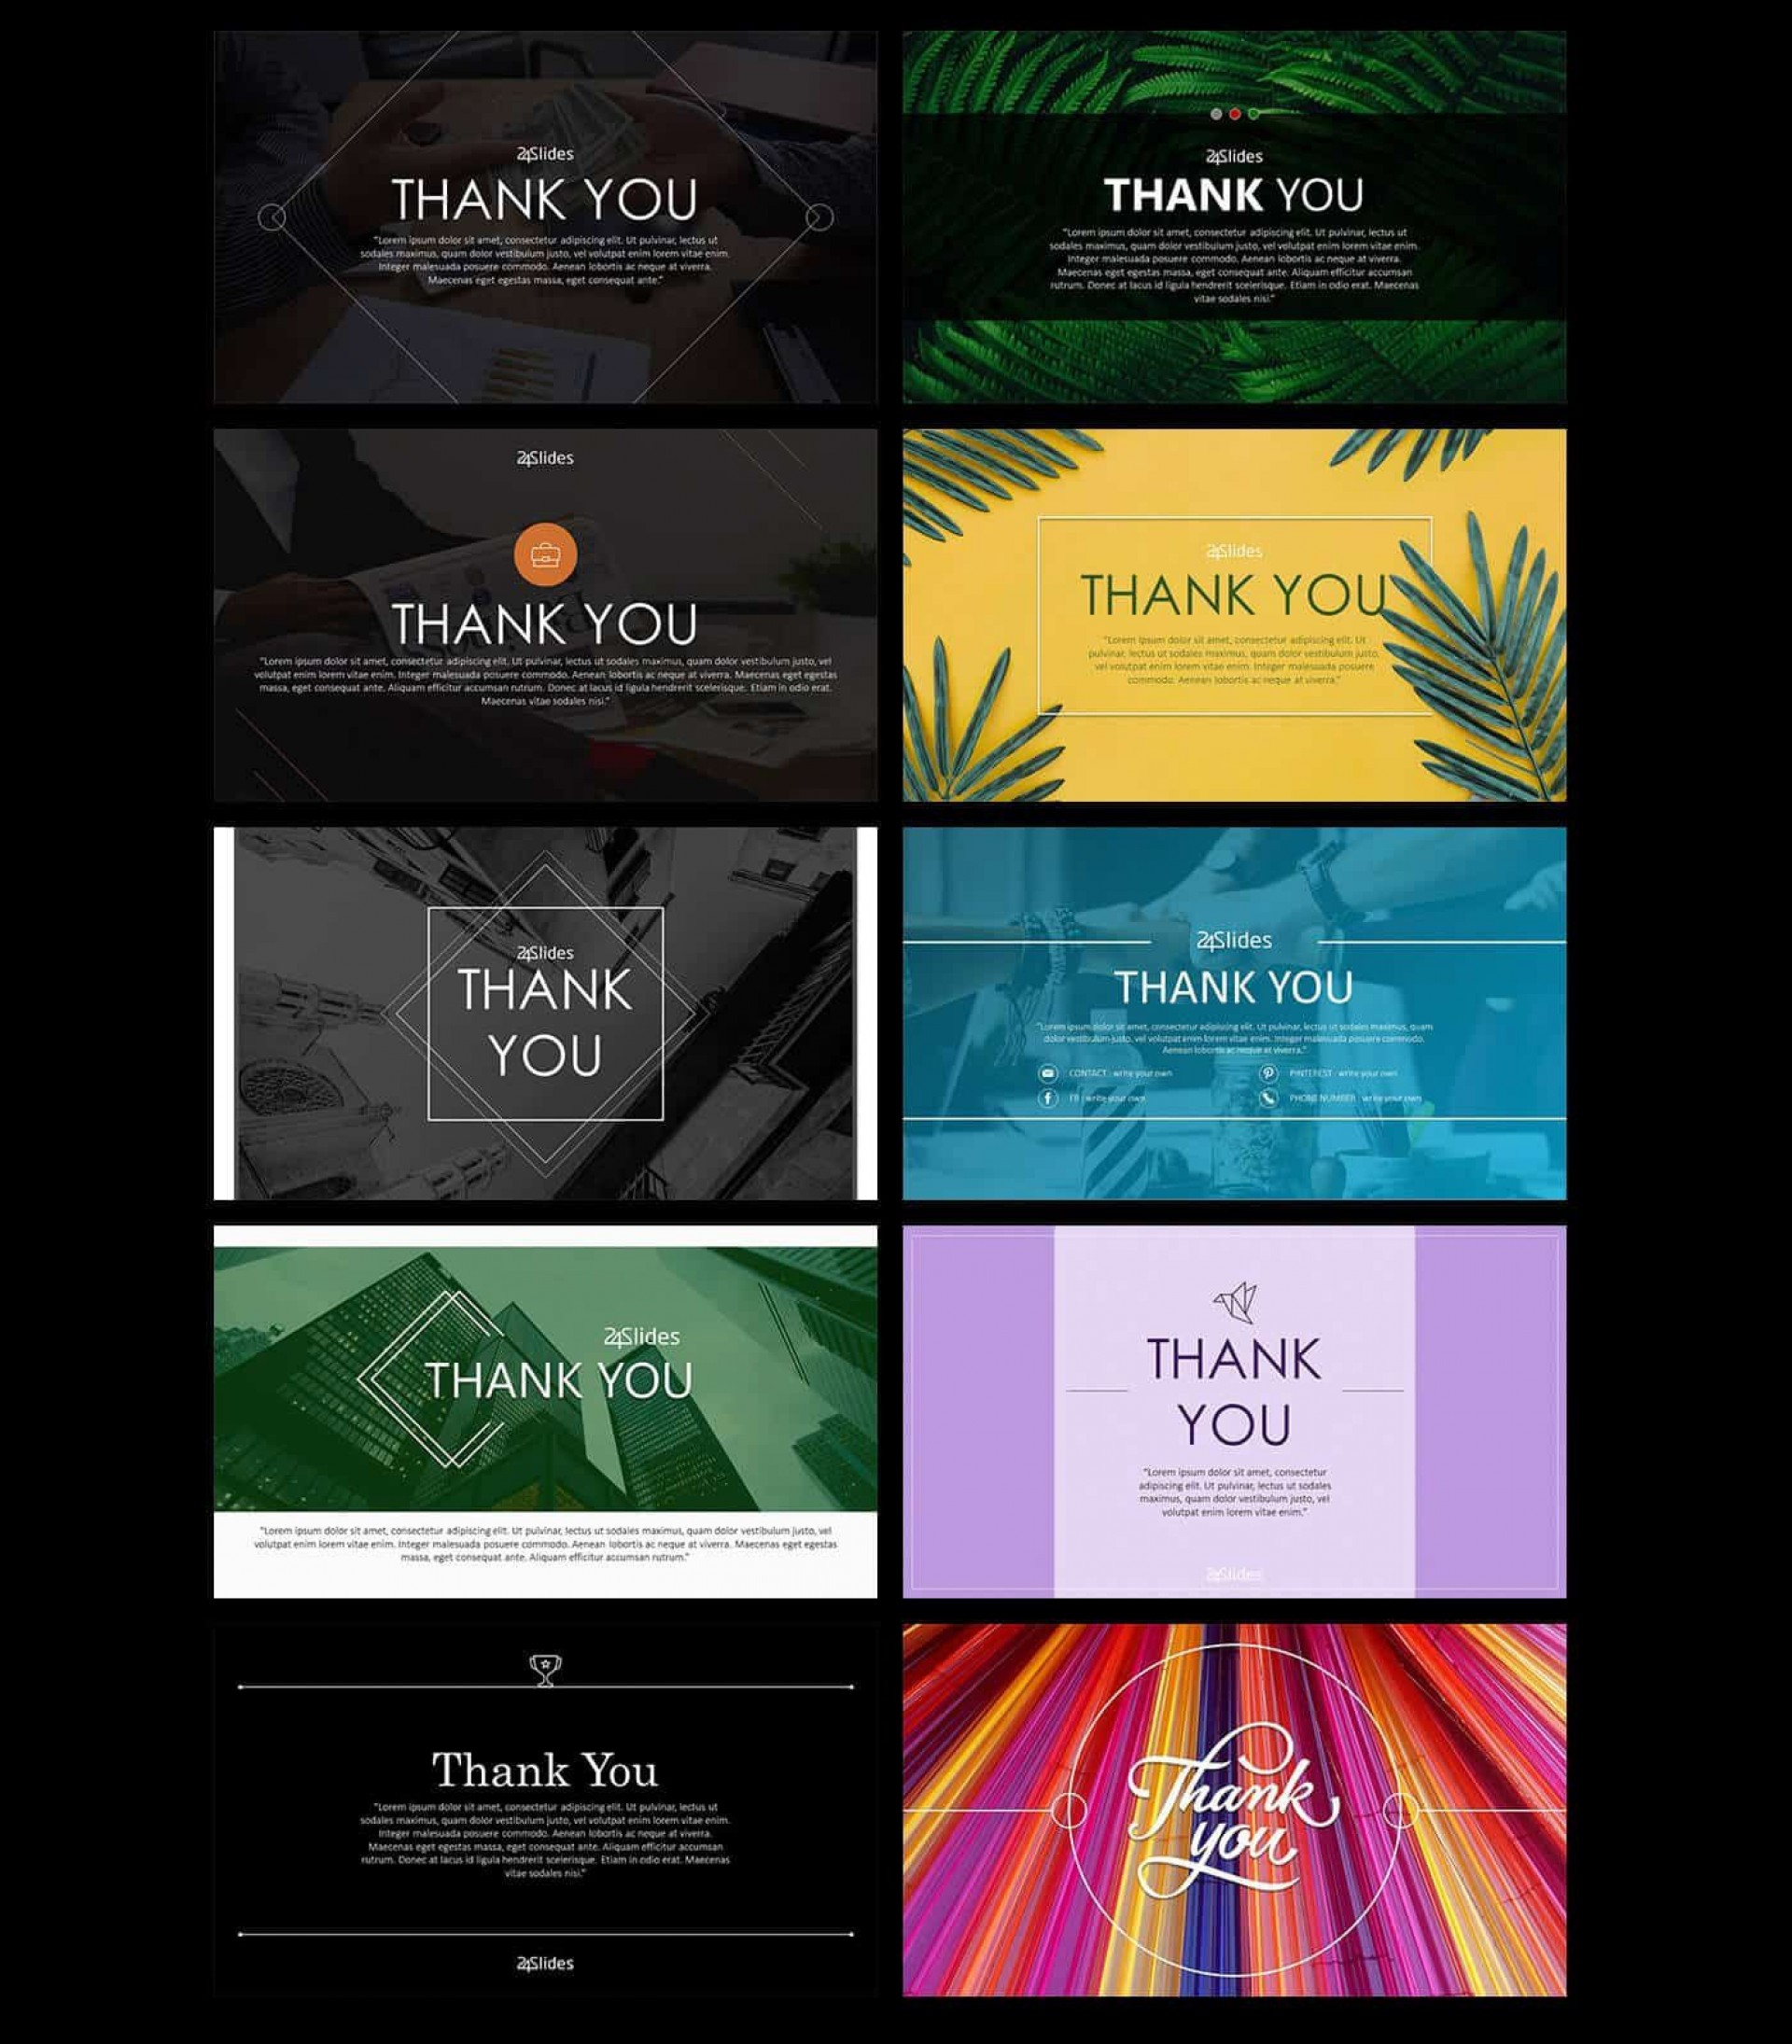 001 Magnificent Free Downloadable Powerpoint Template Highest Clarity  Templates Download Animated Background Design Theme1920